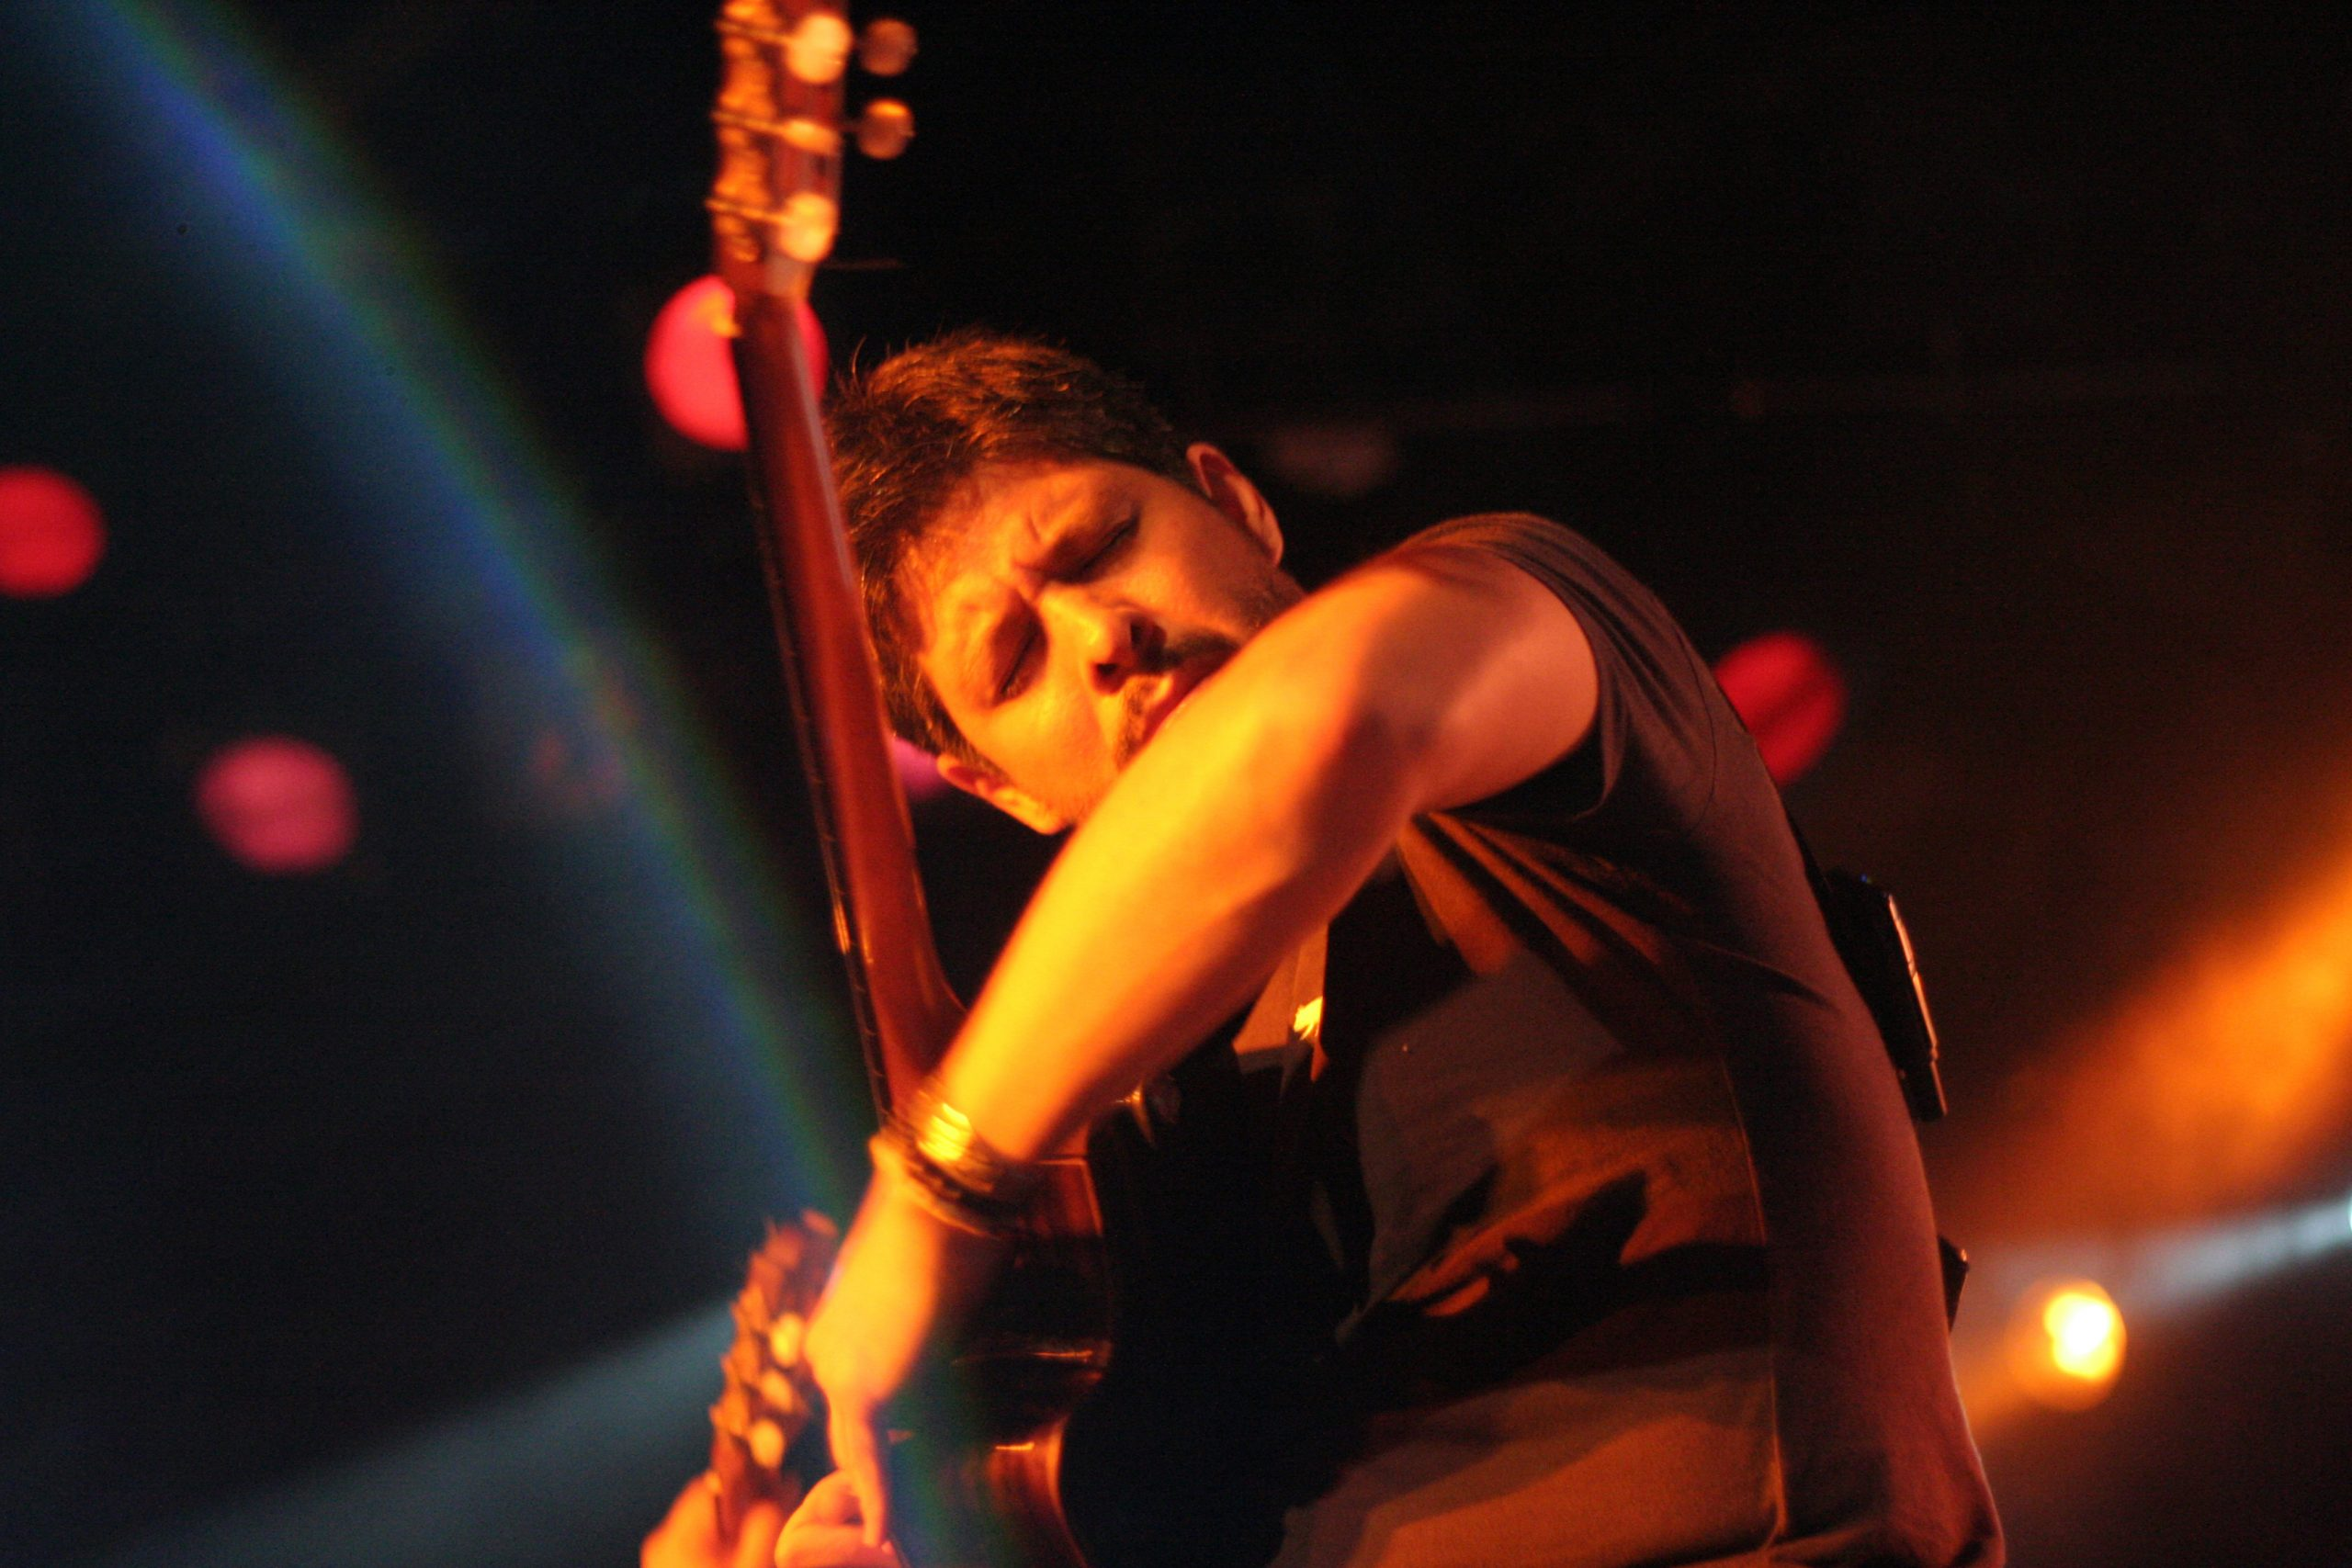 Rodrigo plays guitar on stage at a Rodrigo y Gabriela Concert in Barcelona, Spain.